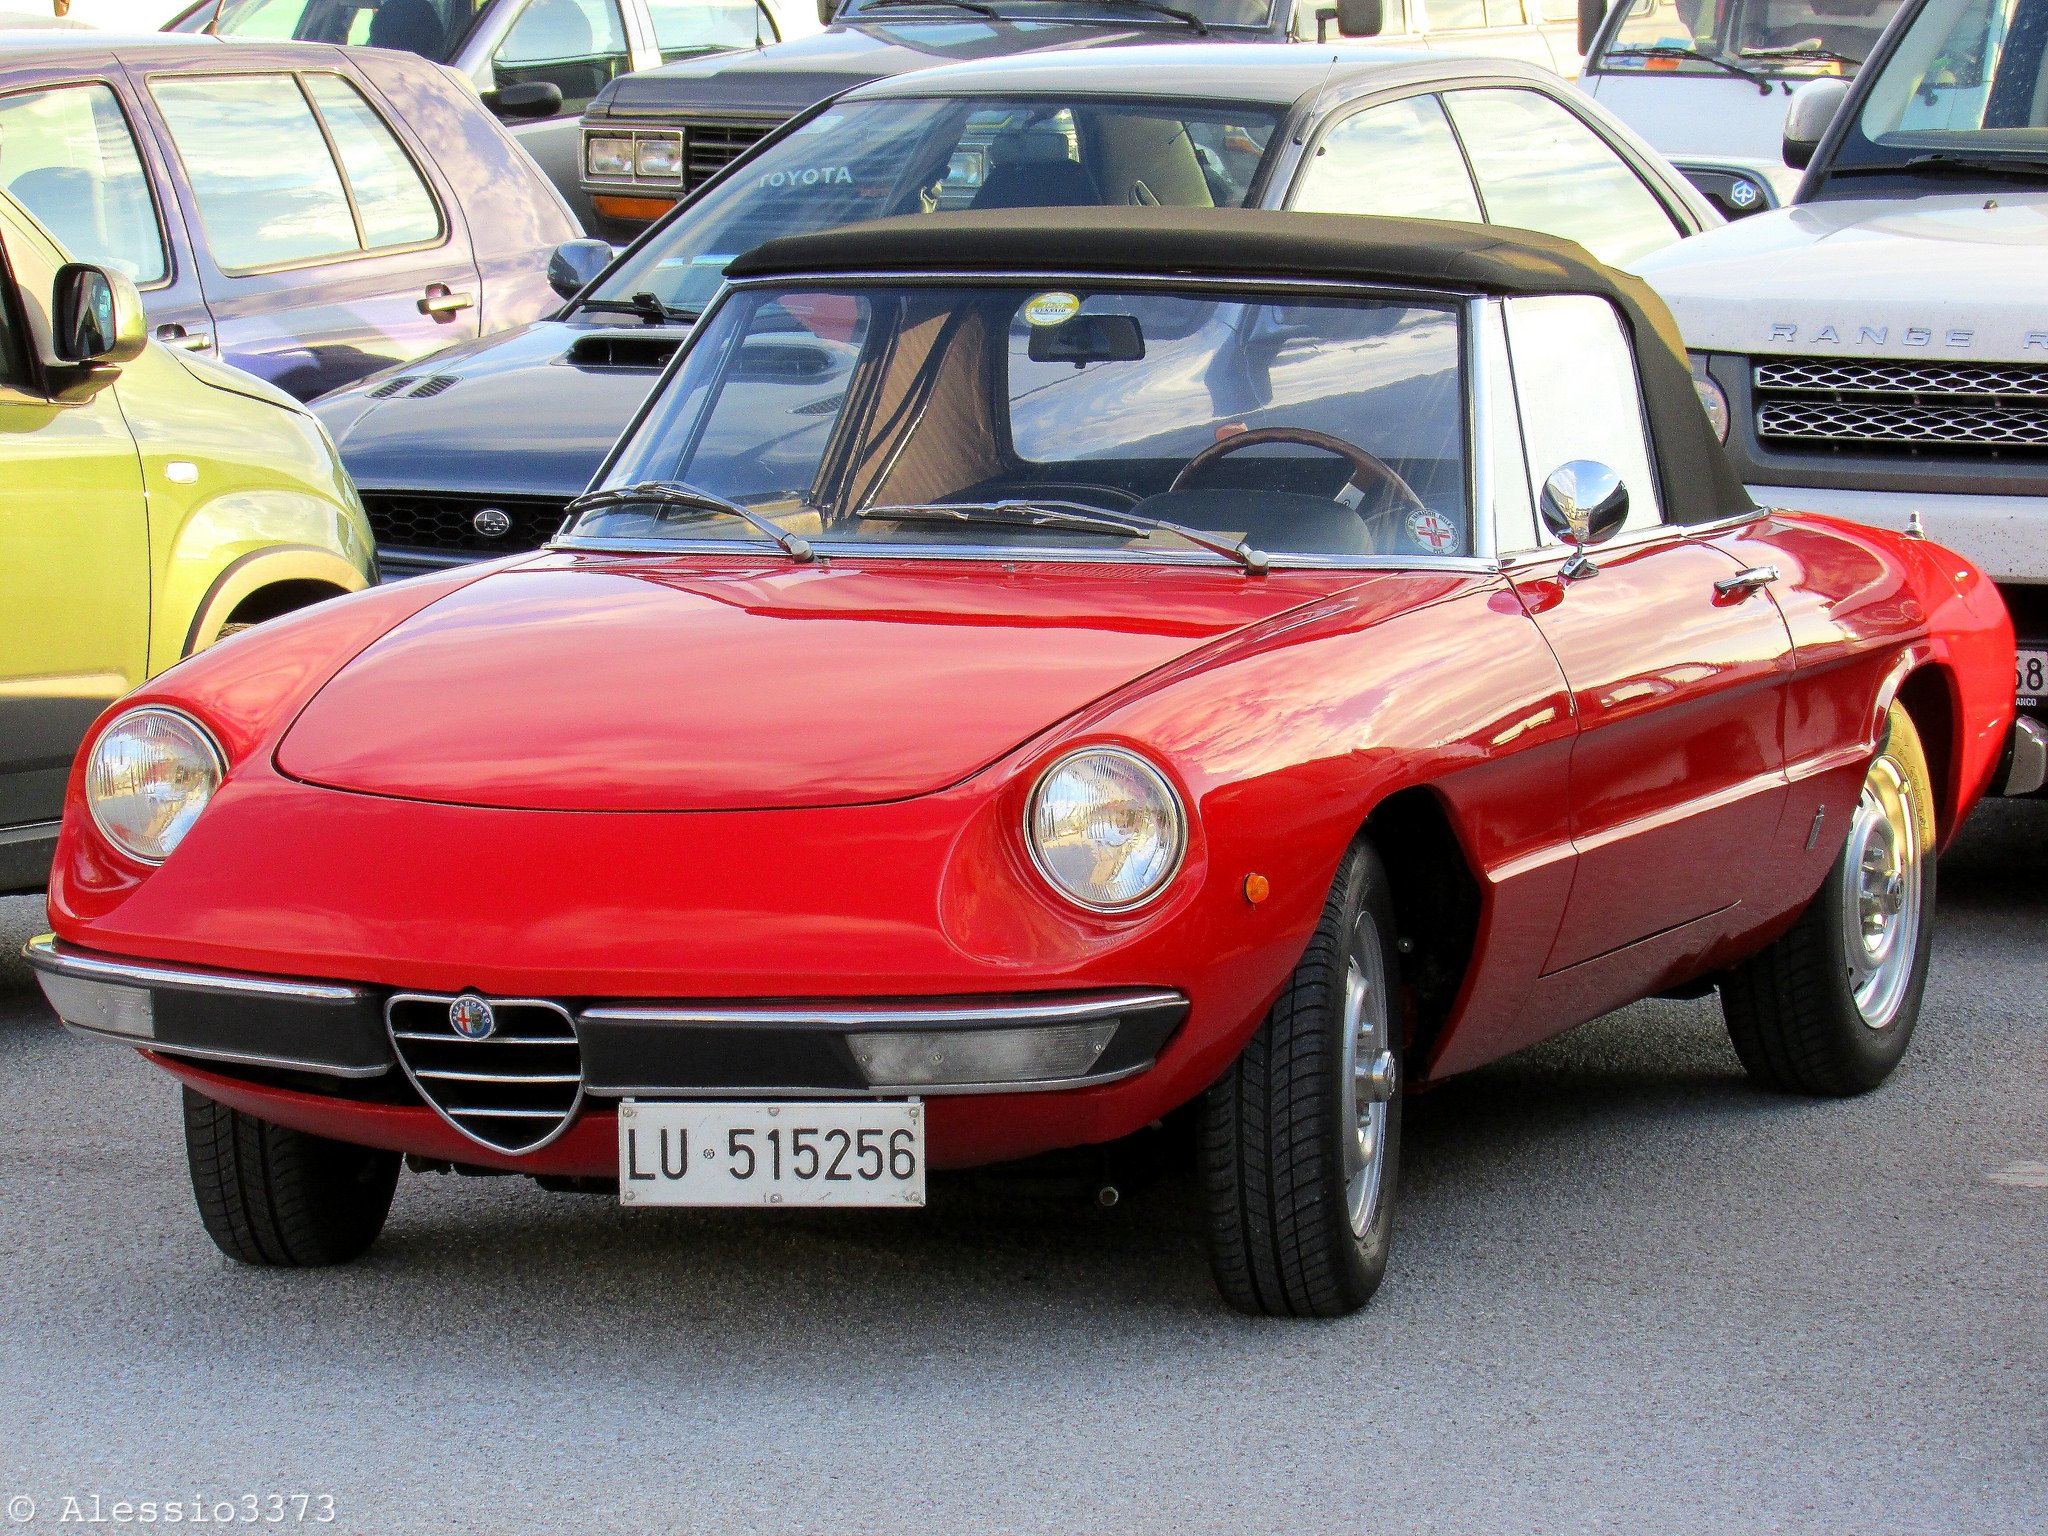 alfa romeo spider classic cars convertible red rouge wallpaper 2048x1536 616275 wallpaperup. Black Bedroom Furniture Sets. Home Design Ideas